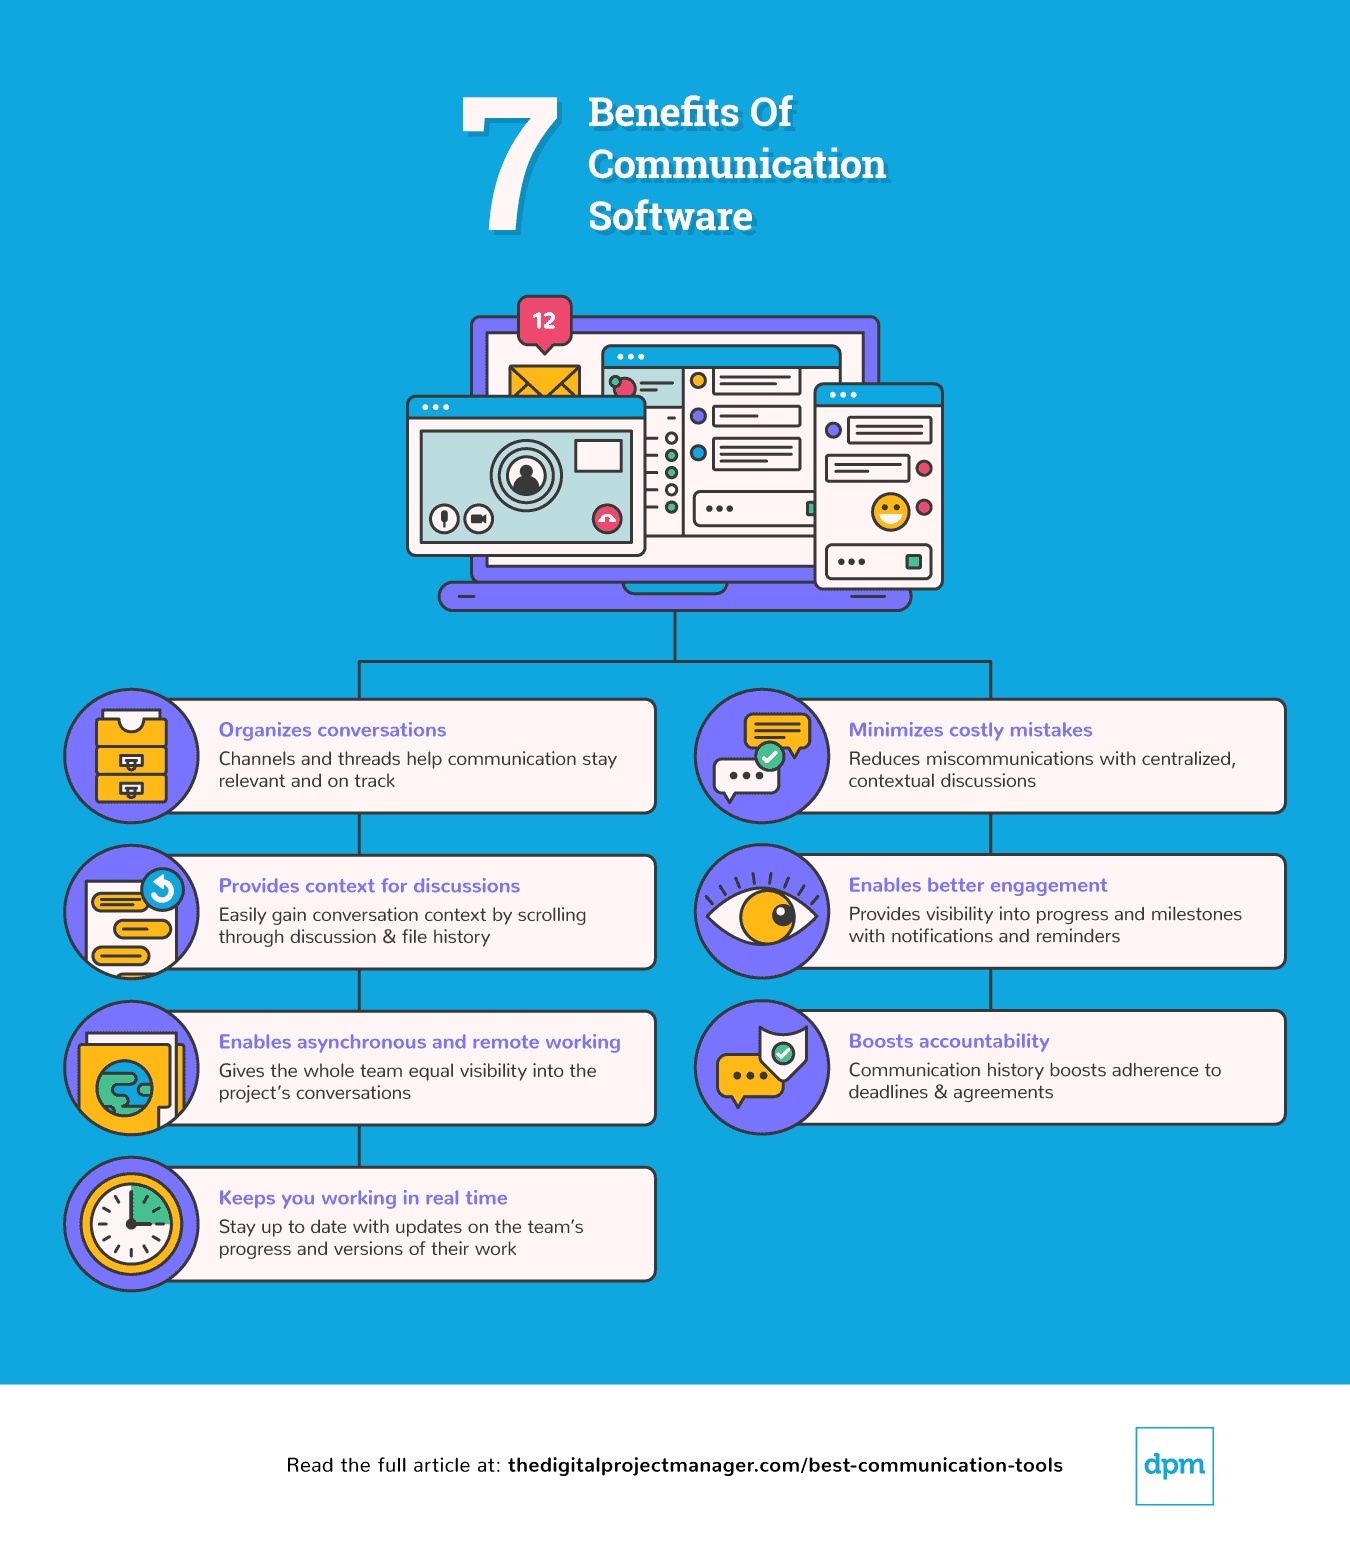 7-benefits-of-communication-software